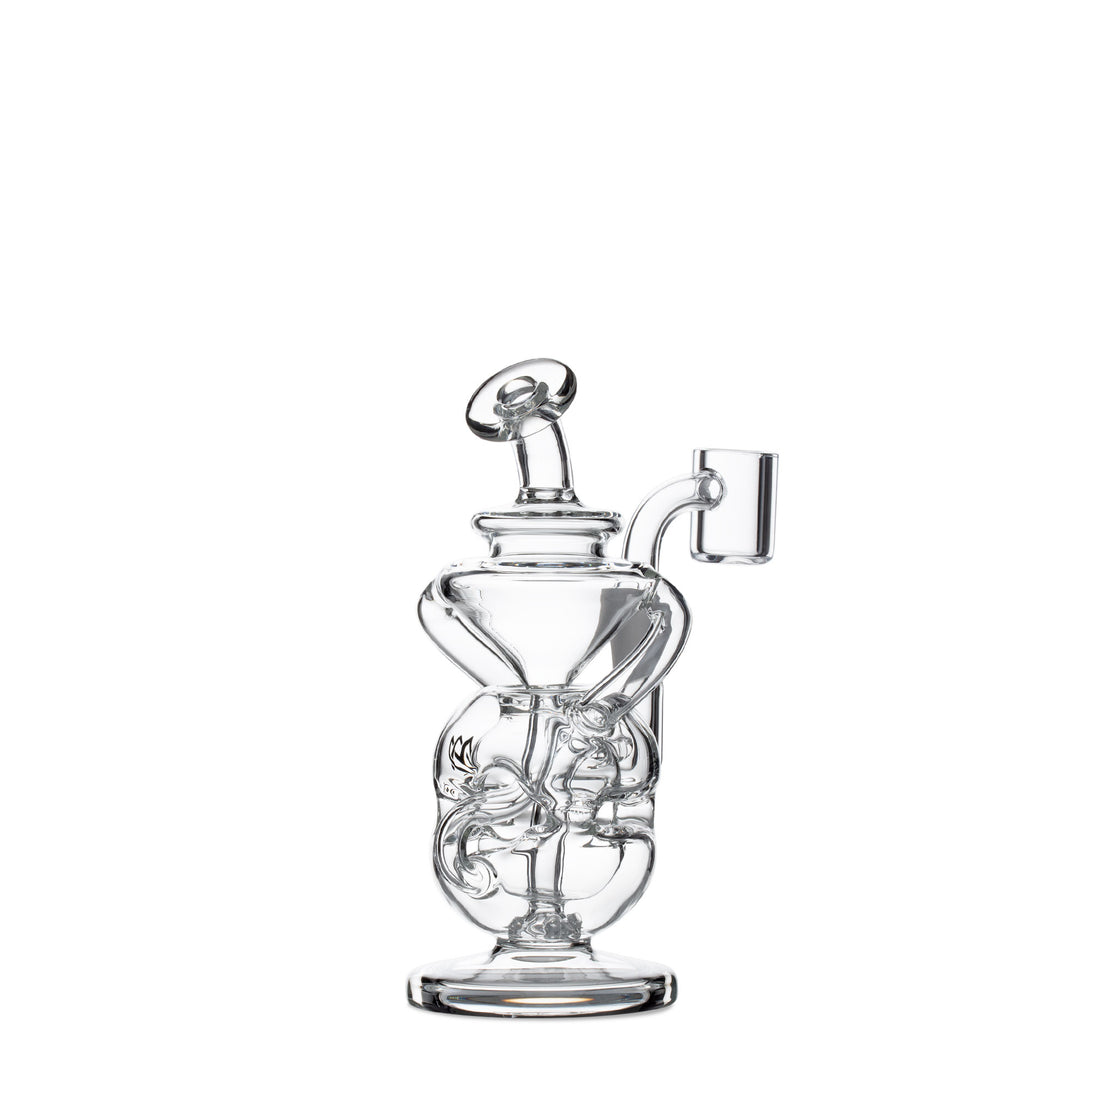 MJ Arsenal 'Infinity' Mini Rig - 420 Science - The most trusted online smoke shop.